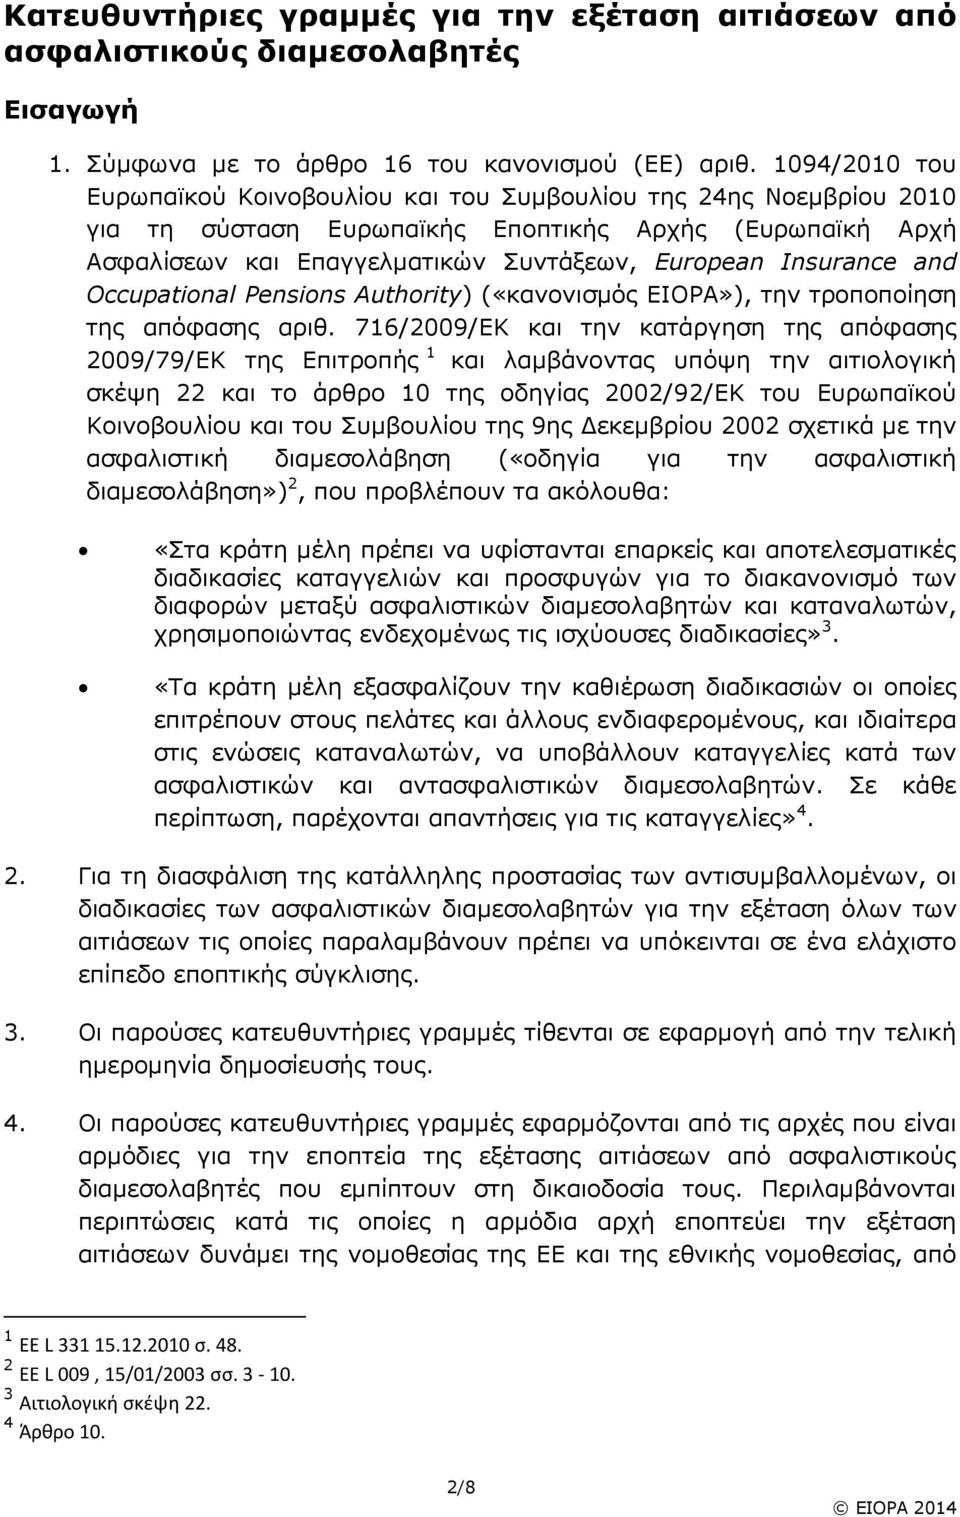 and Occupational Pensions Authority) («κανονισ5ός EIOPA»), την τροποποίηση της απόφασης αριθ.